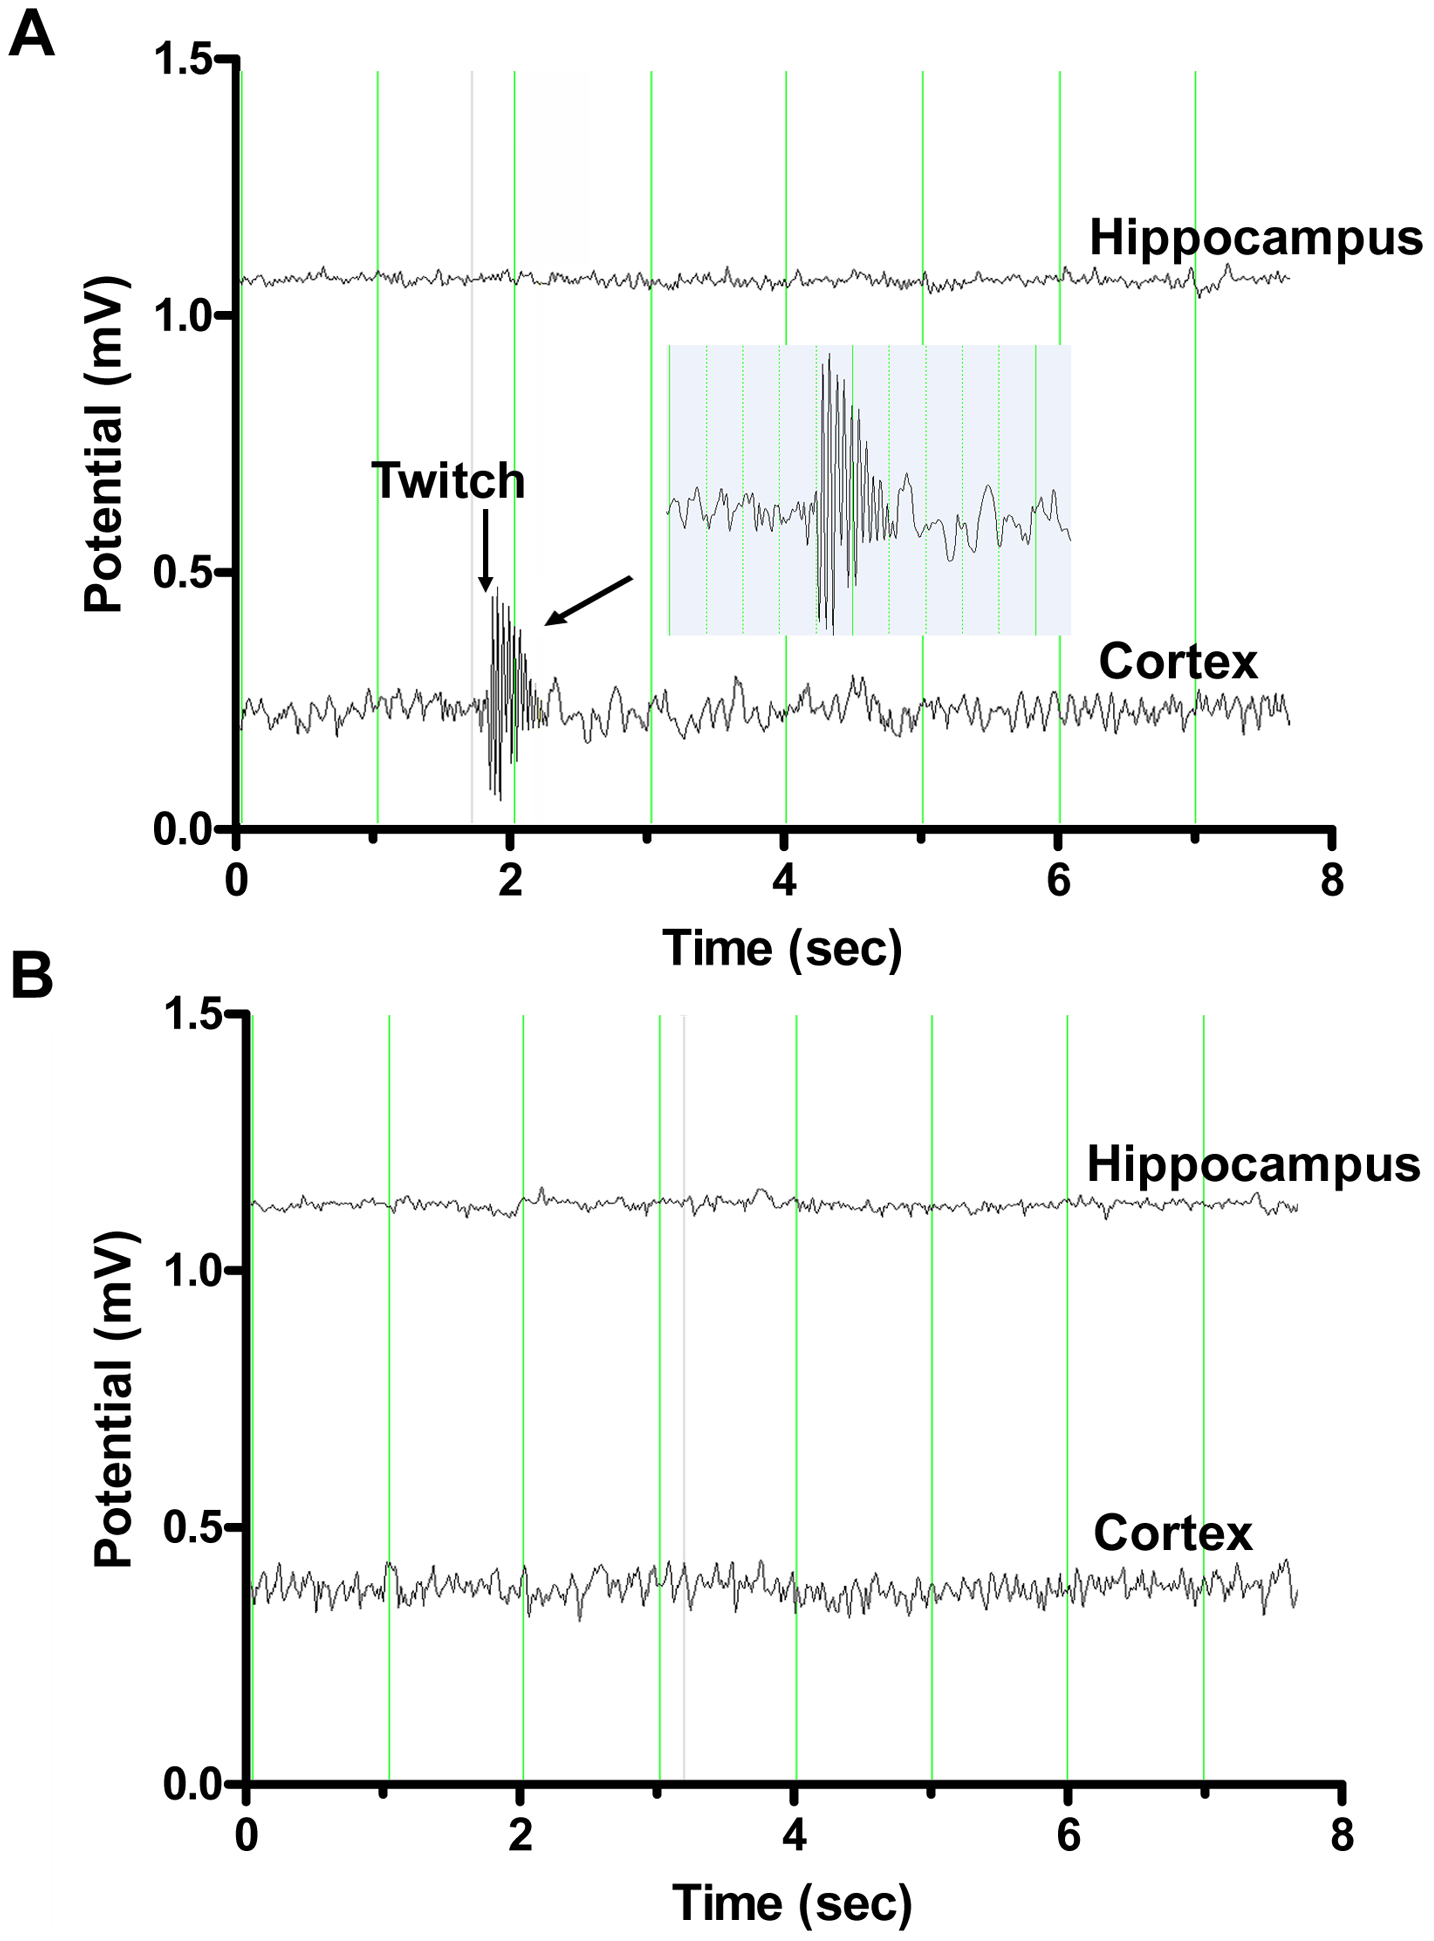 Representative electroencephalography (EEG) recordings from double deficient <i>Neu4<sup>−/−</sup>;Hexa<sup>−/−</sup></i> and single-deficient <i>Hexa</i><sup>−/−</sup> mice.